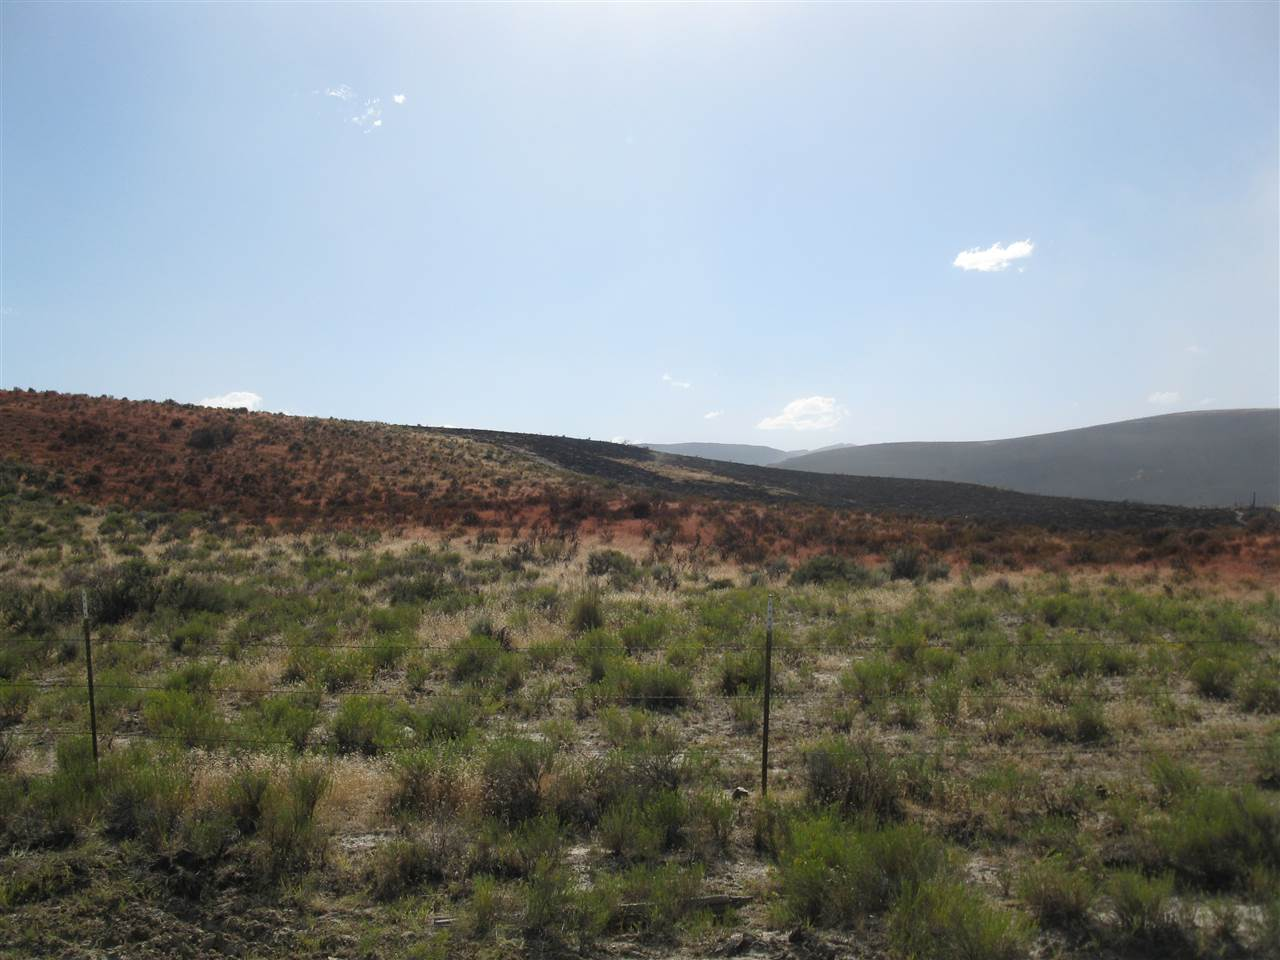 Recreational Property for Sale at Rabbit Creek Road Rabbit Creek Road Murphy, Idaho 83650